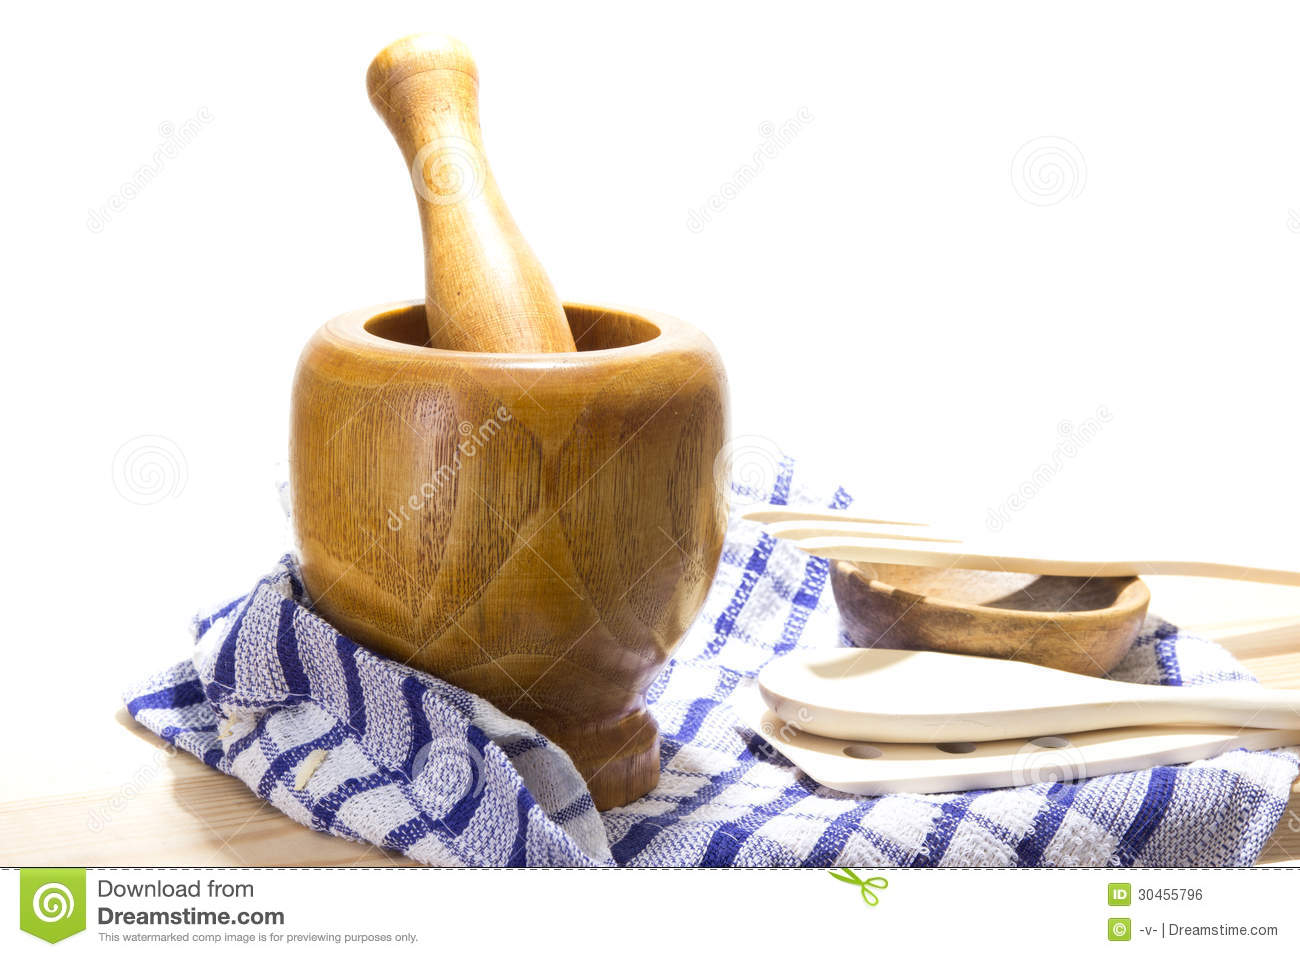 Mortar and pestle royalty free stock image image 30455796 for Traditional kitchen equipments